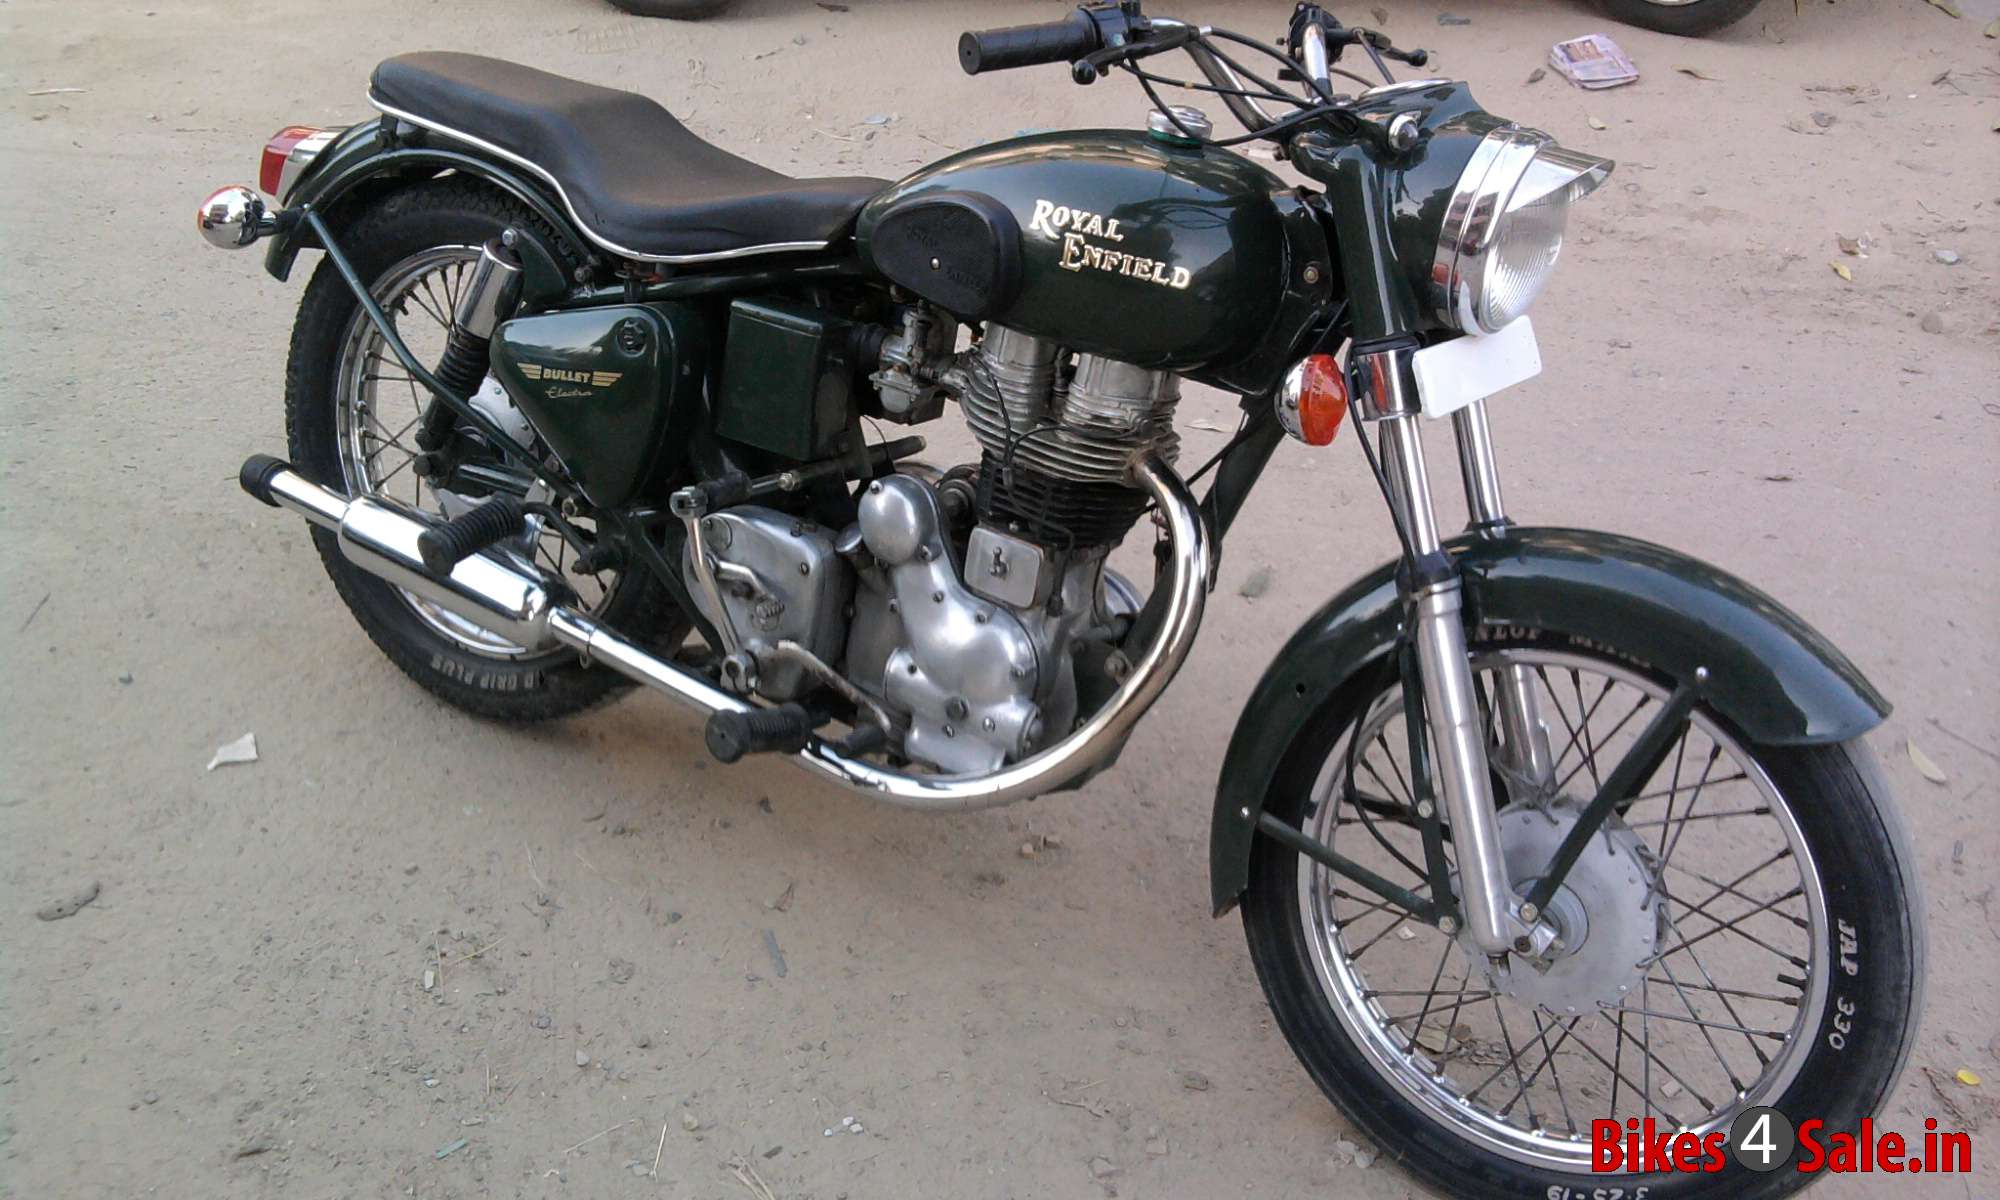 Royal Enfield Bullet 350 Army 2001 images #123106